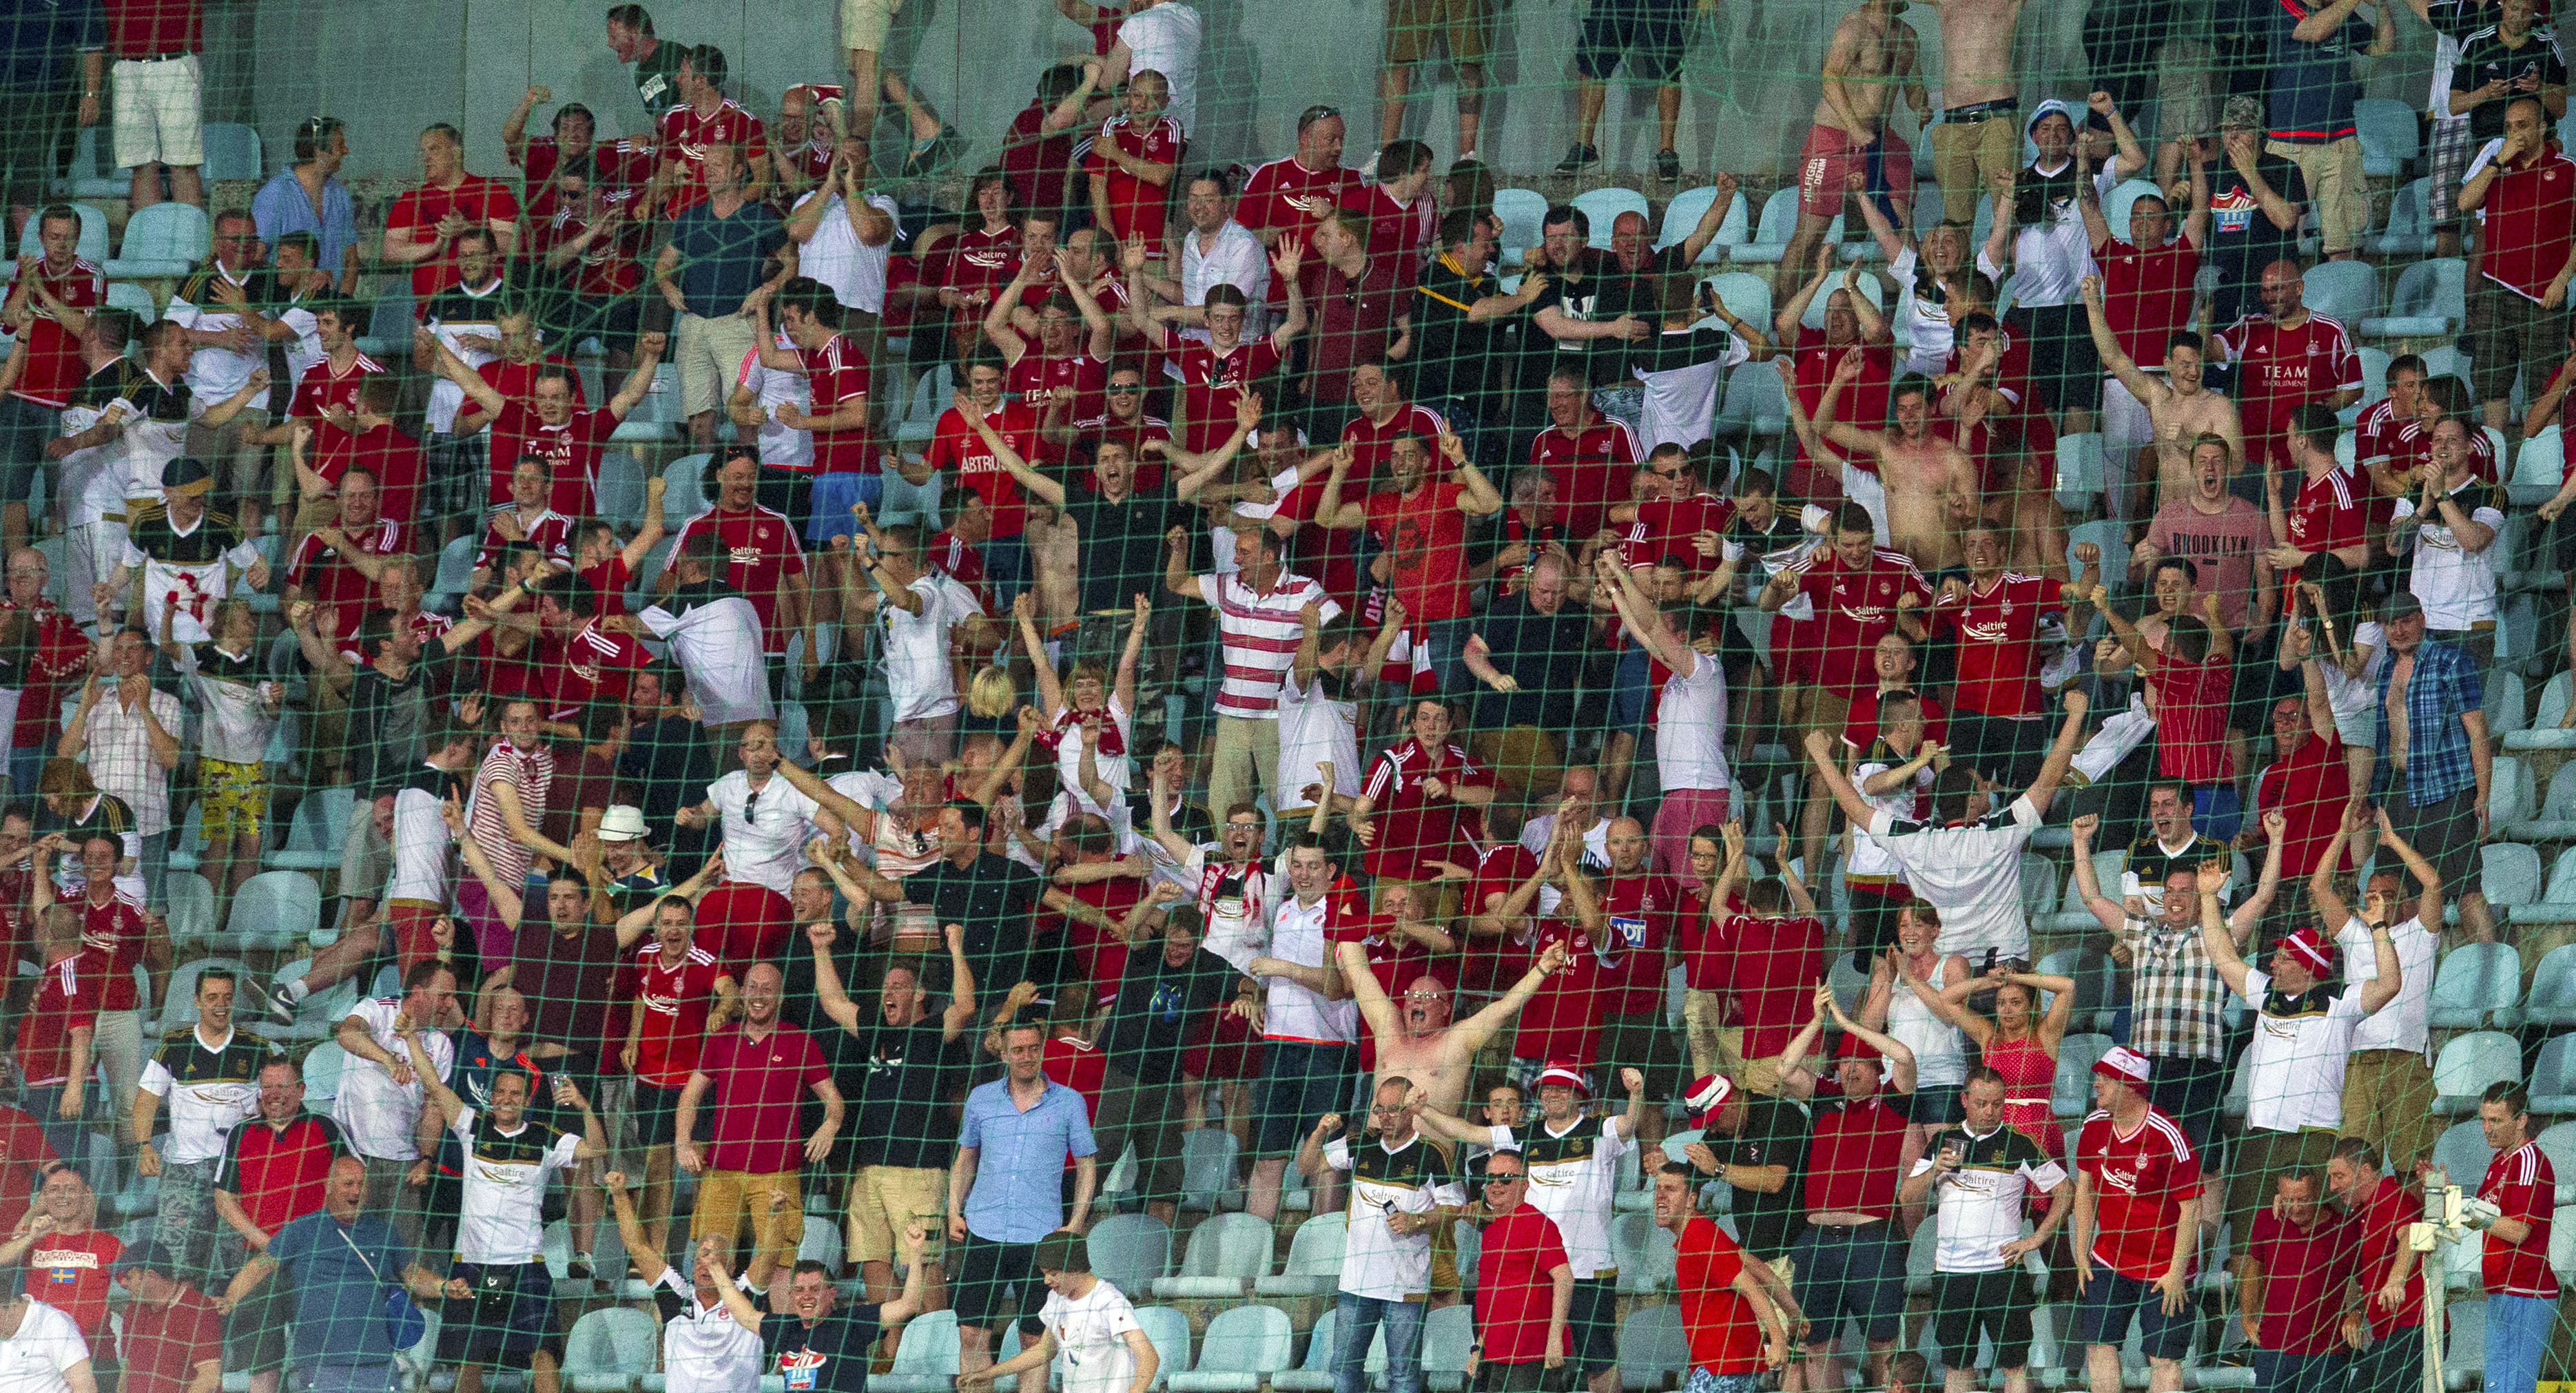 Dons fans at the game in Croatia.